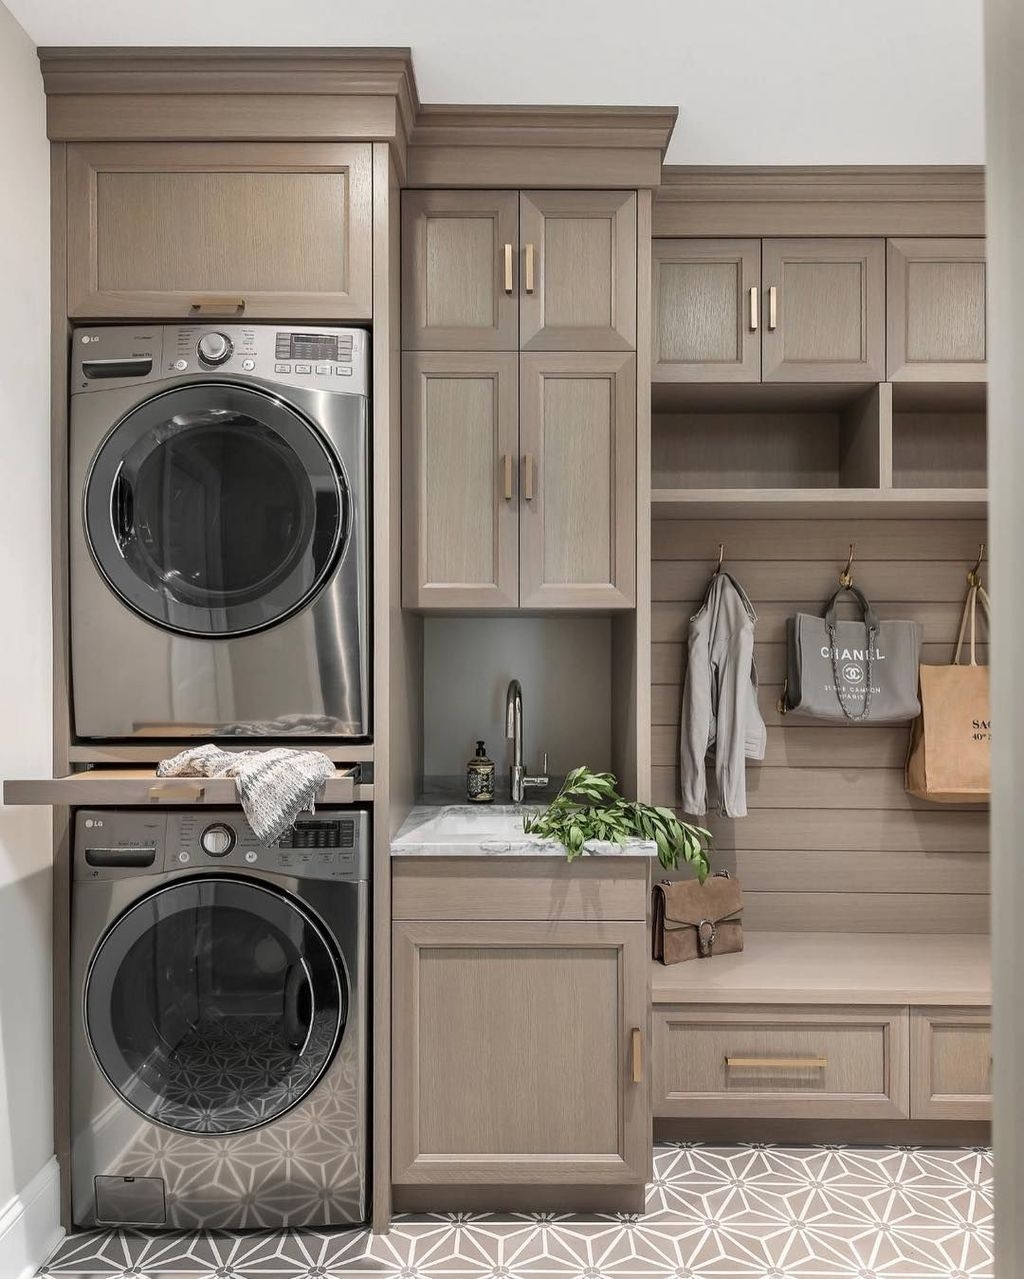 Relaxing Laundry Room Layout Ideas14